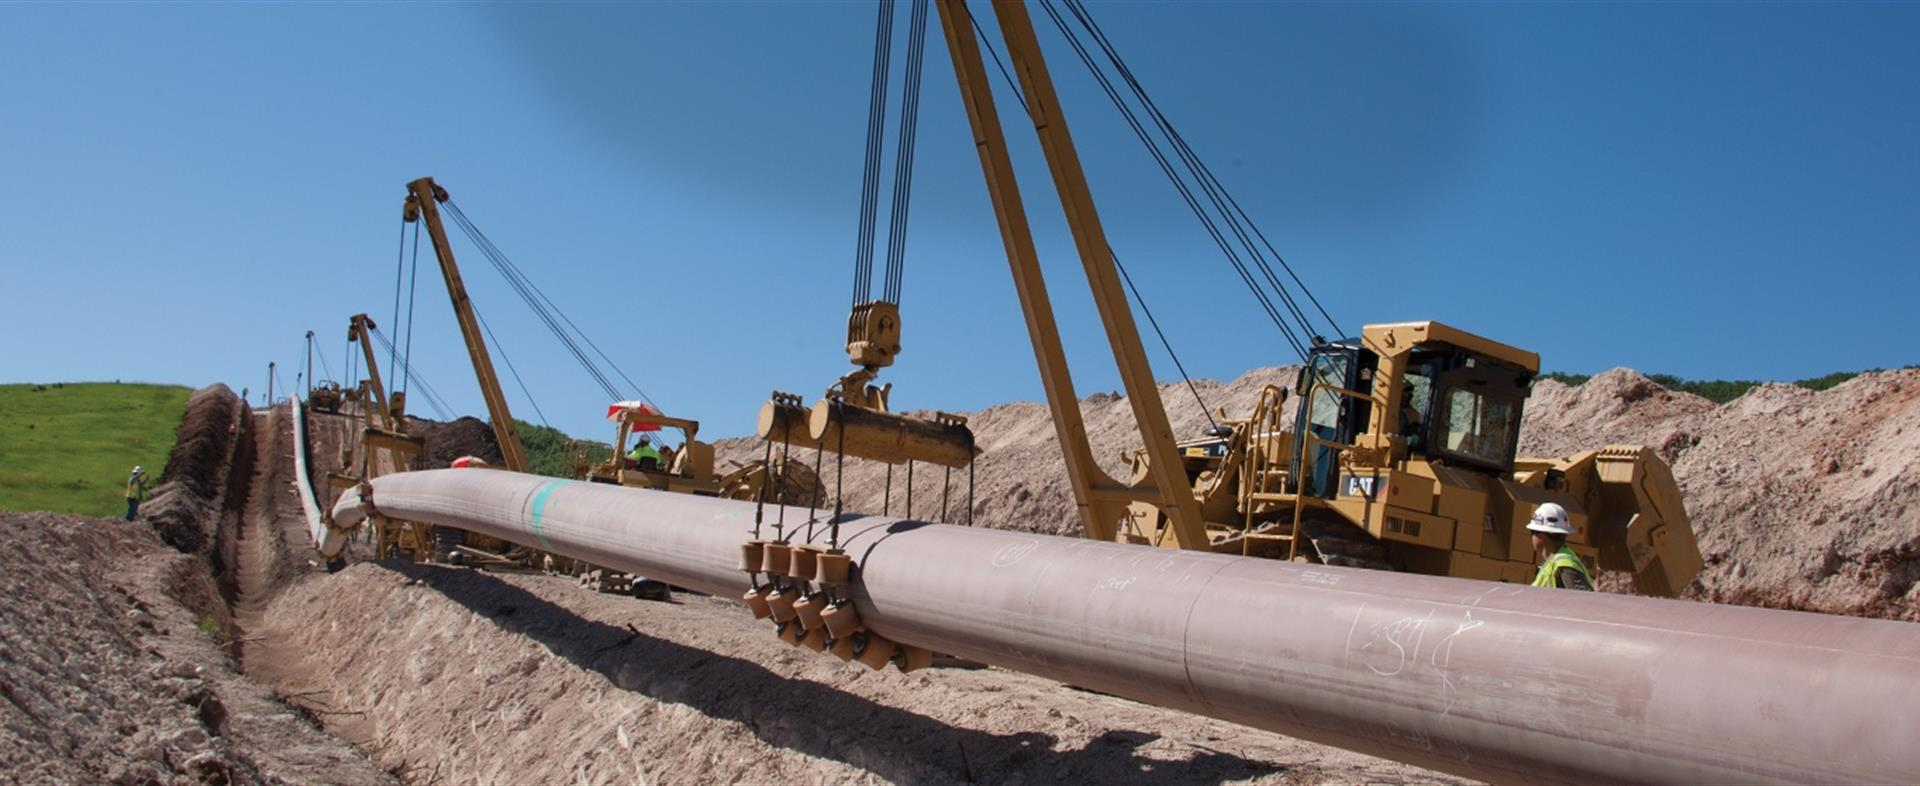 Sideboom And Sidebooms For Pipeline Construction By Plm